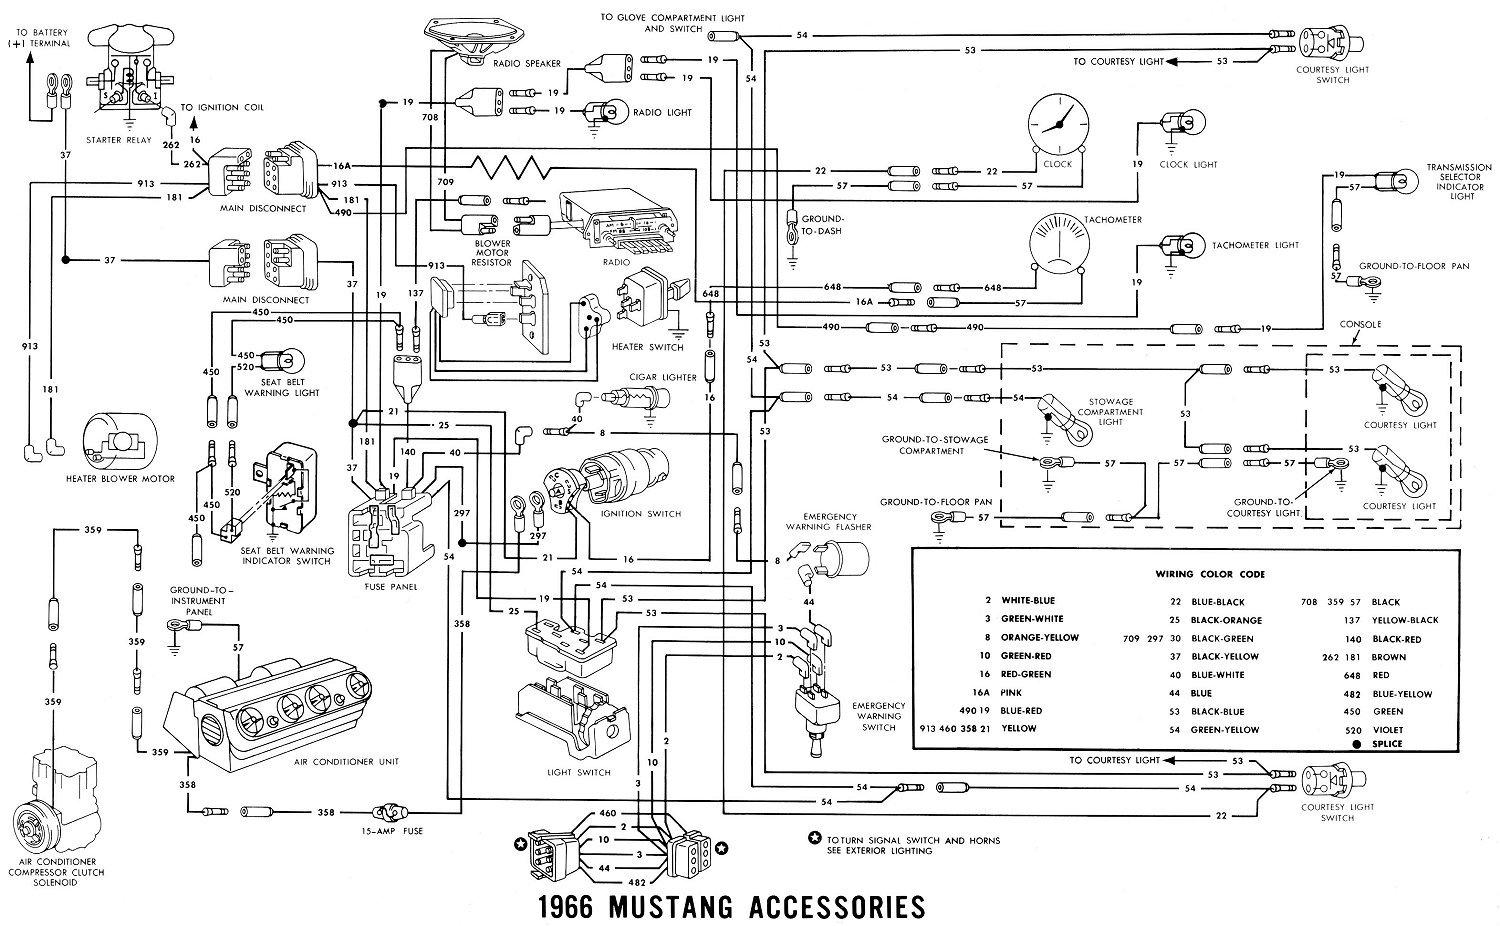 66acces1 1969 mustang dash wiring diagram 1969 mustang wiring routing 2005 ford mustang instrument cluster wiring diagram at readyjetset.co